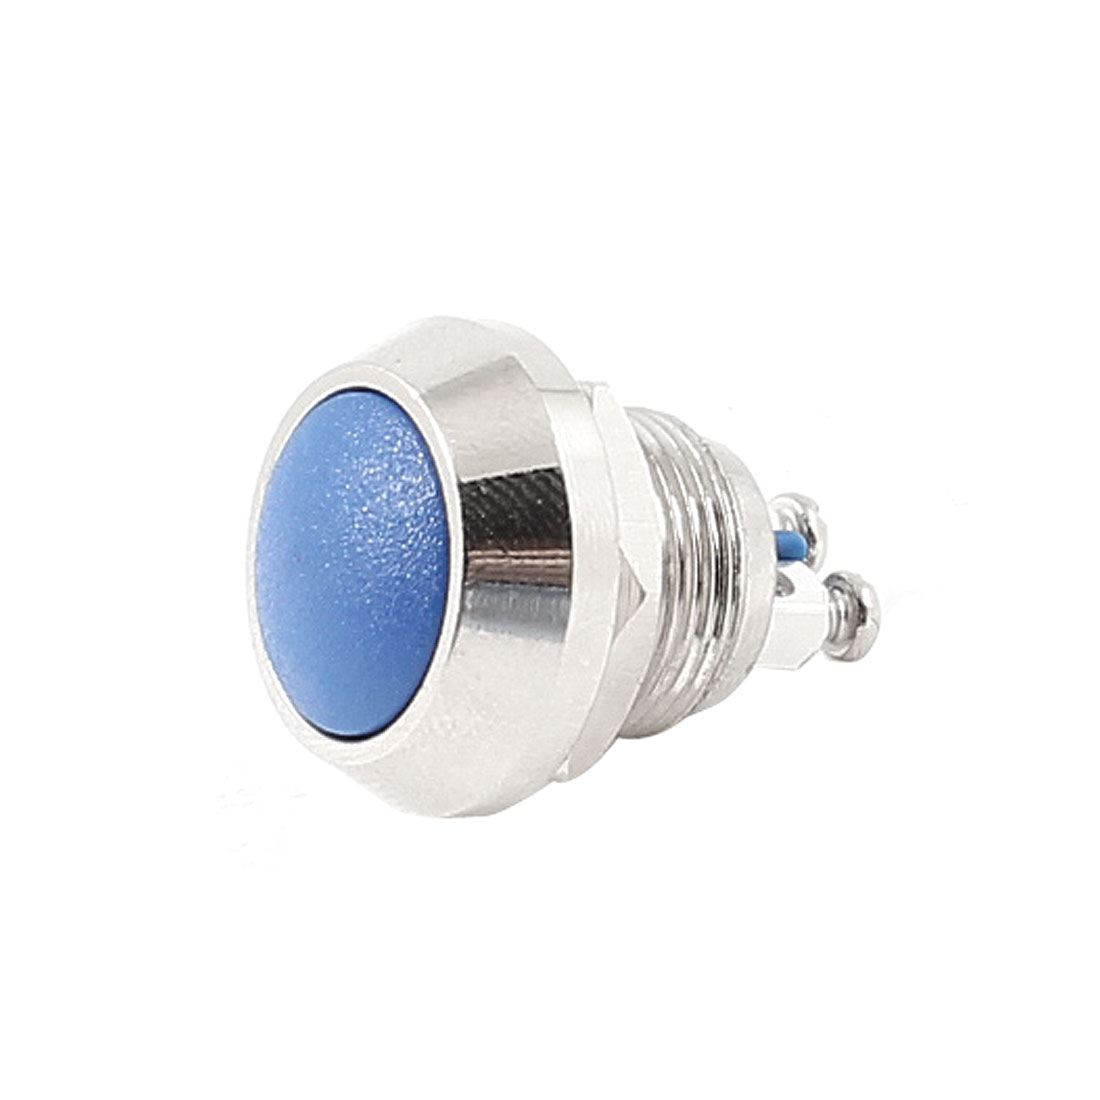 Blue Round Head 12mm Threaded SPST Momentary Stainless Steel Pushbutton Switch AC 250V 3A